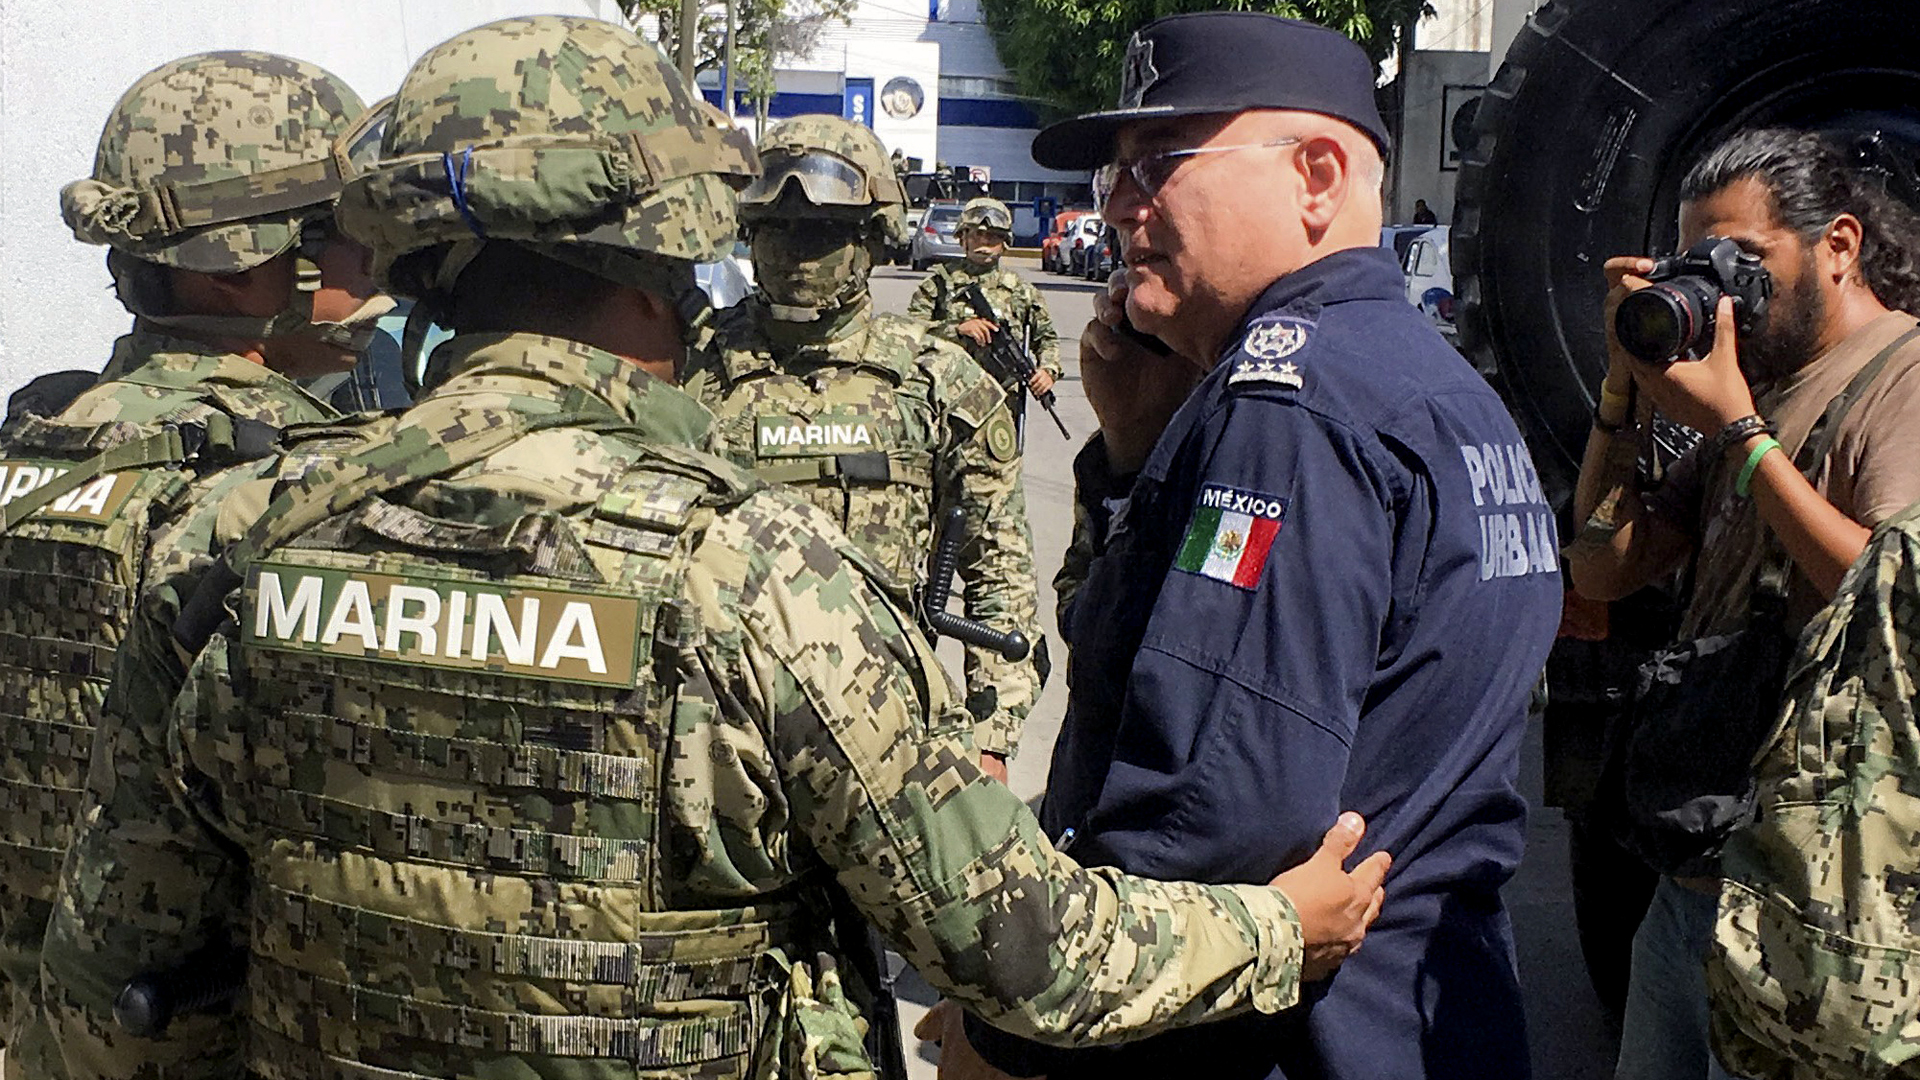 Mexican Navy members escort the Secretary of Public Security of Acapulco Max Lorenzo Sedano, right, after they took control of the local Public Security Secretariat in Acapulco, state of Guerrero, Mexico, on September 25, 2018. (Credit: FRANCISCO ROBLES/AFP/Getty Images)